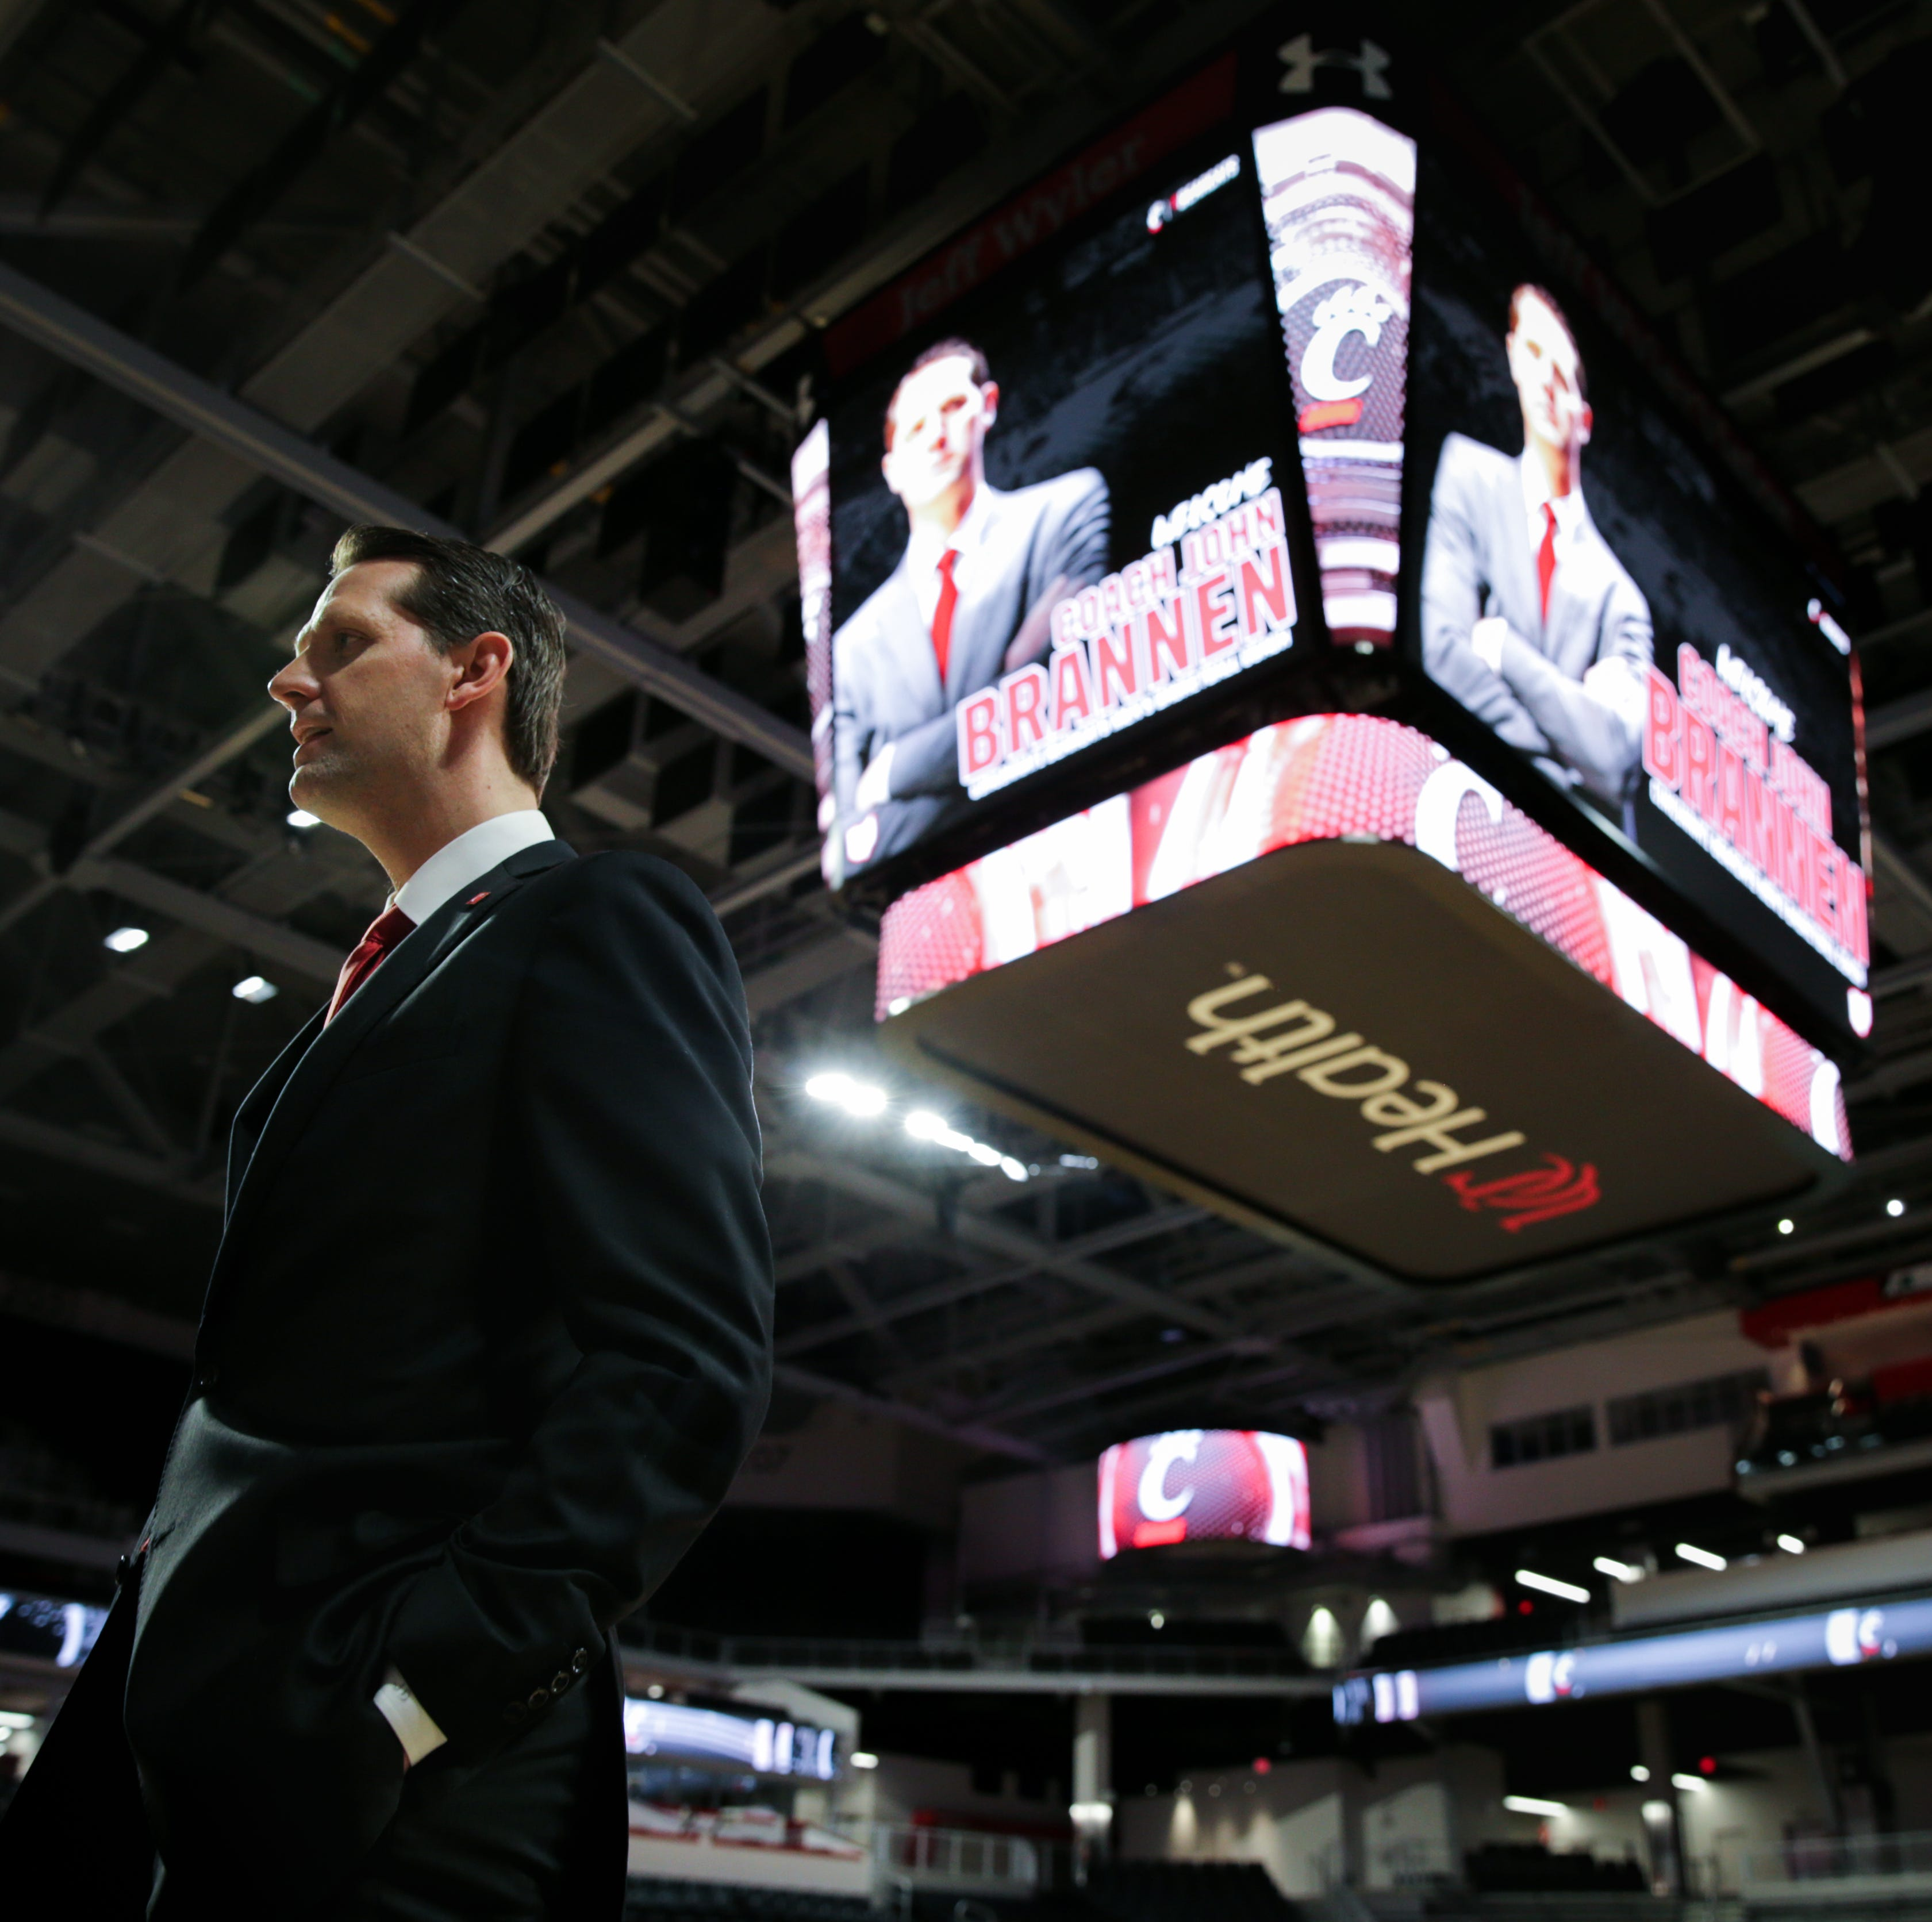 The legendary work ethic of 'relentless' John Brannen and his path to the Cincinnati Bearcats